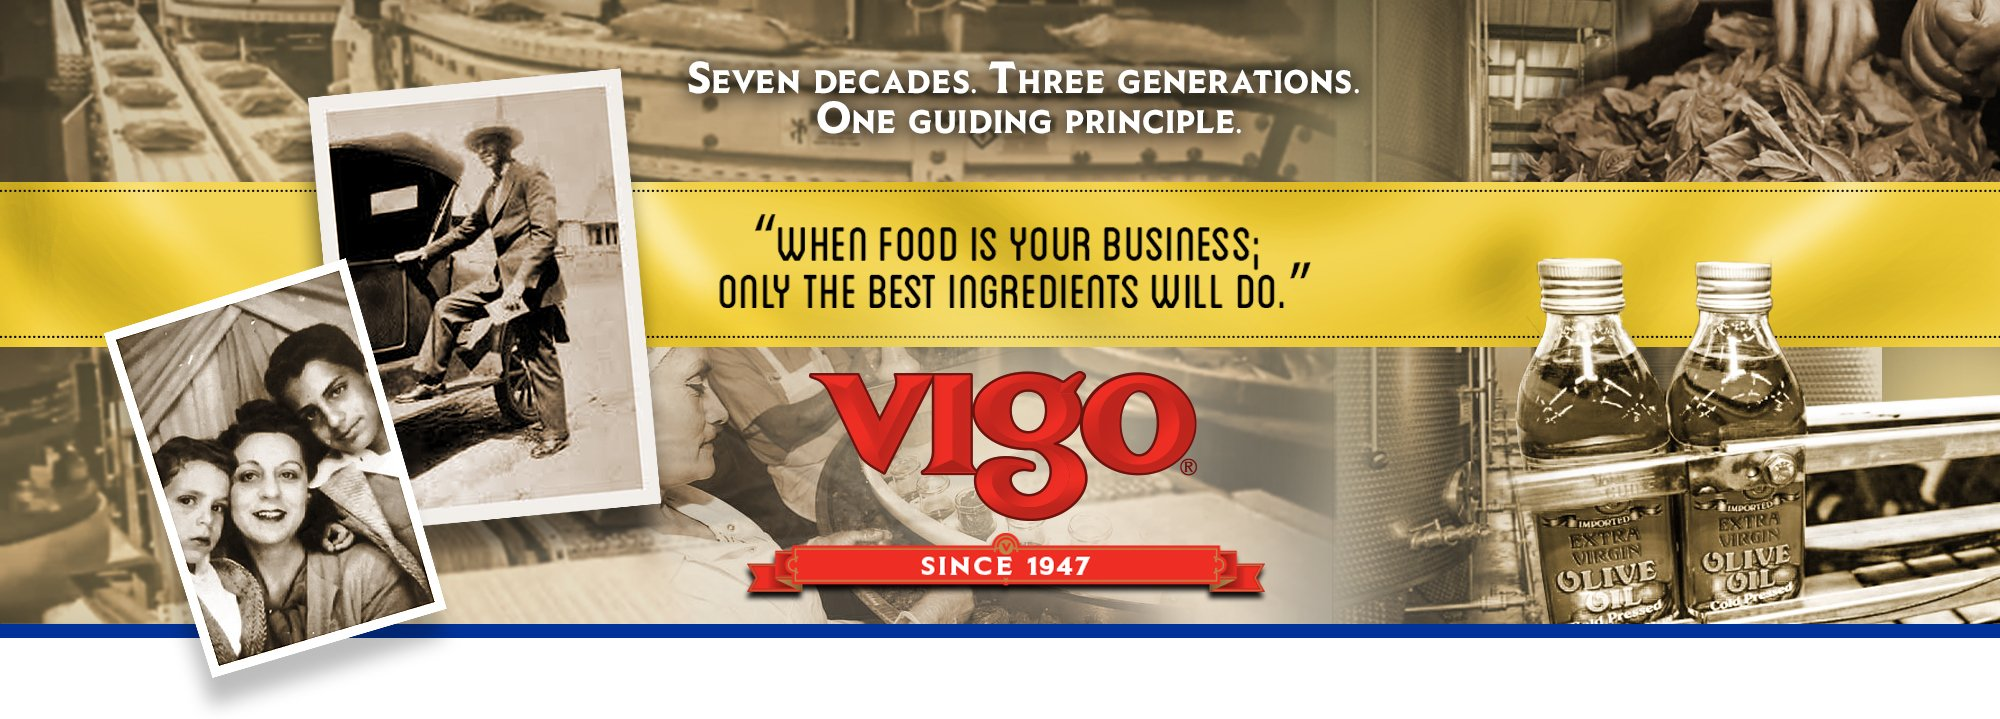 Vigo - Good food since 1947